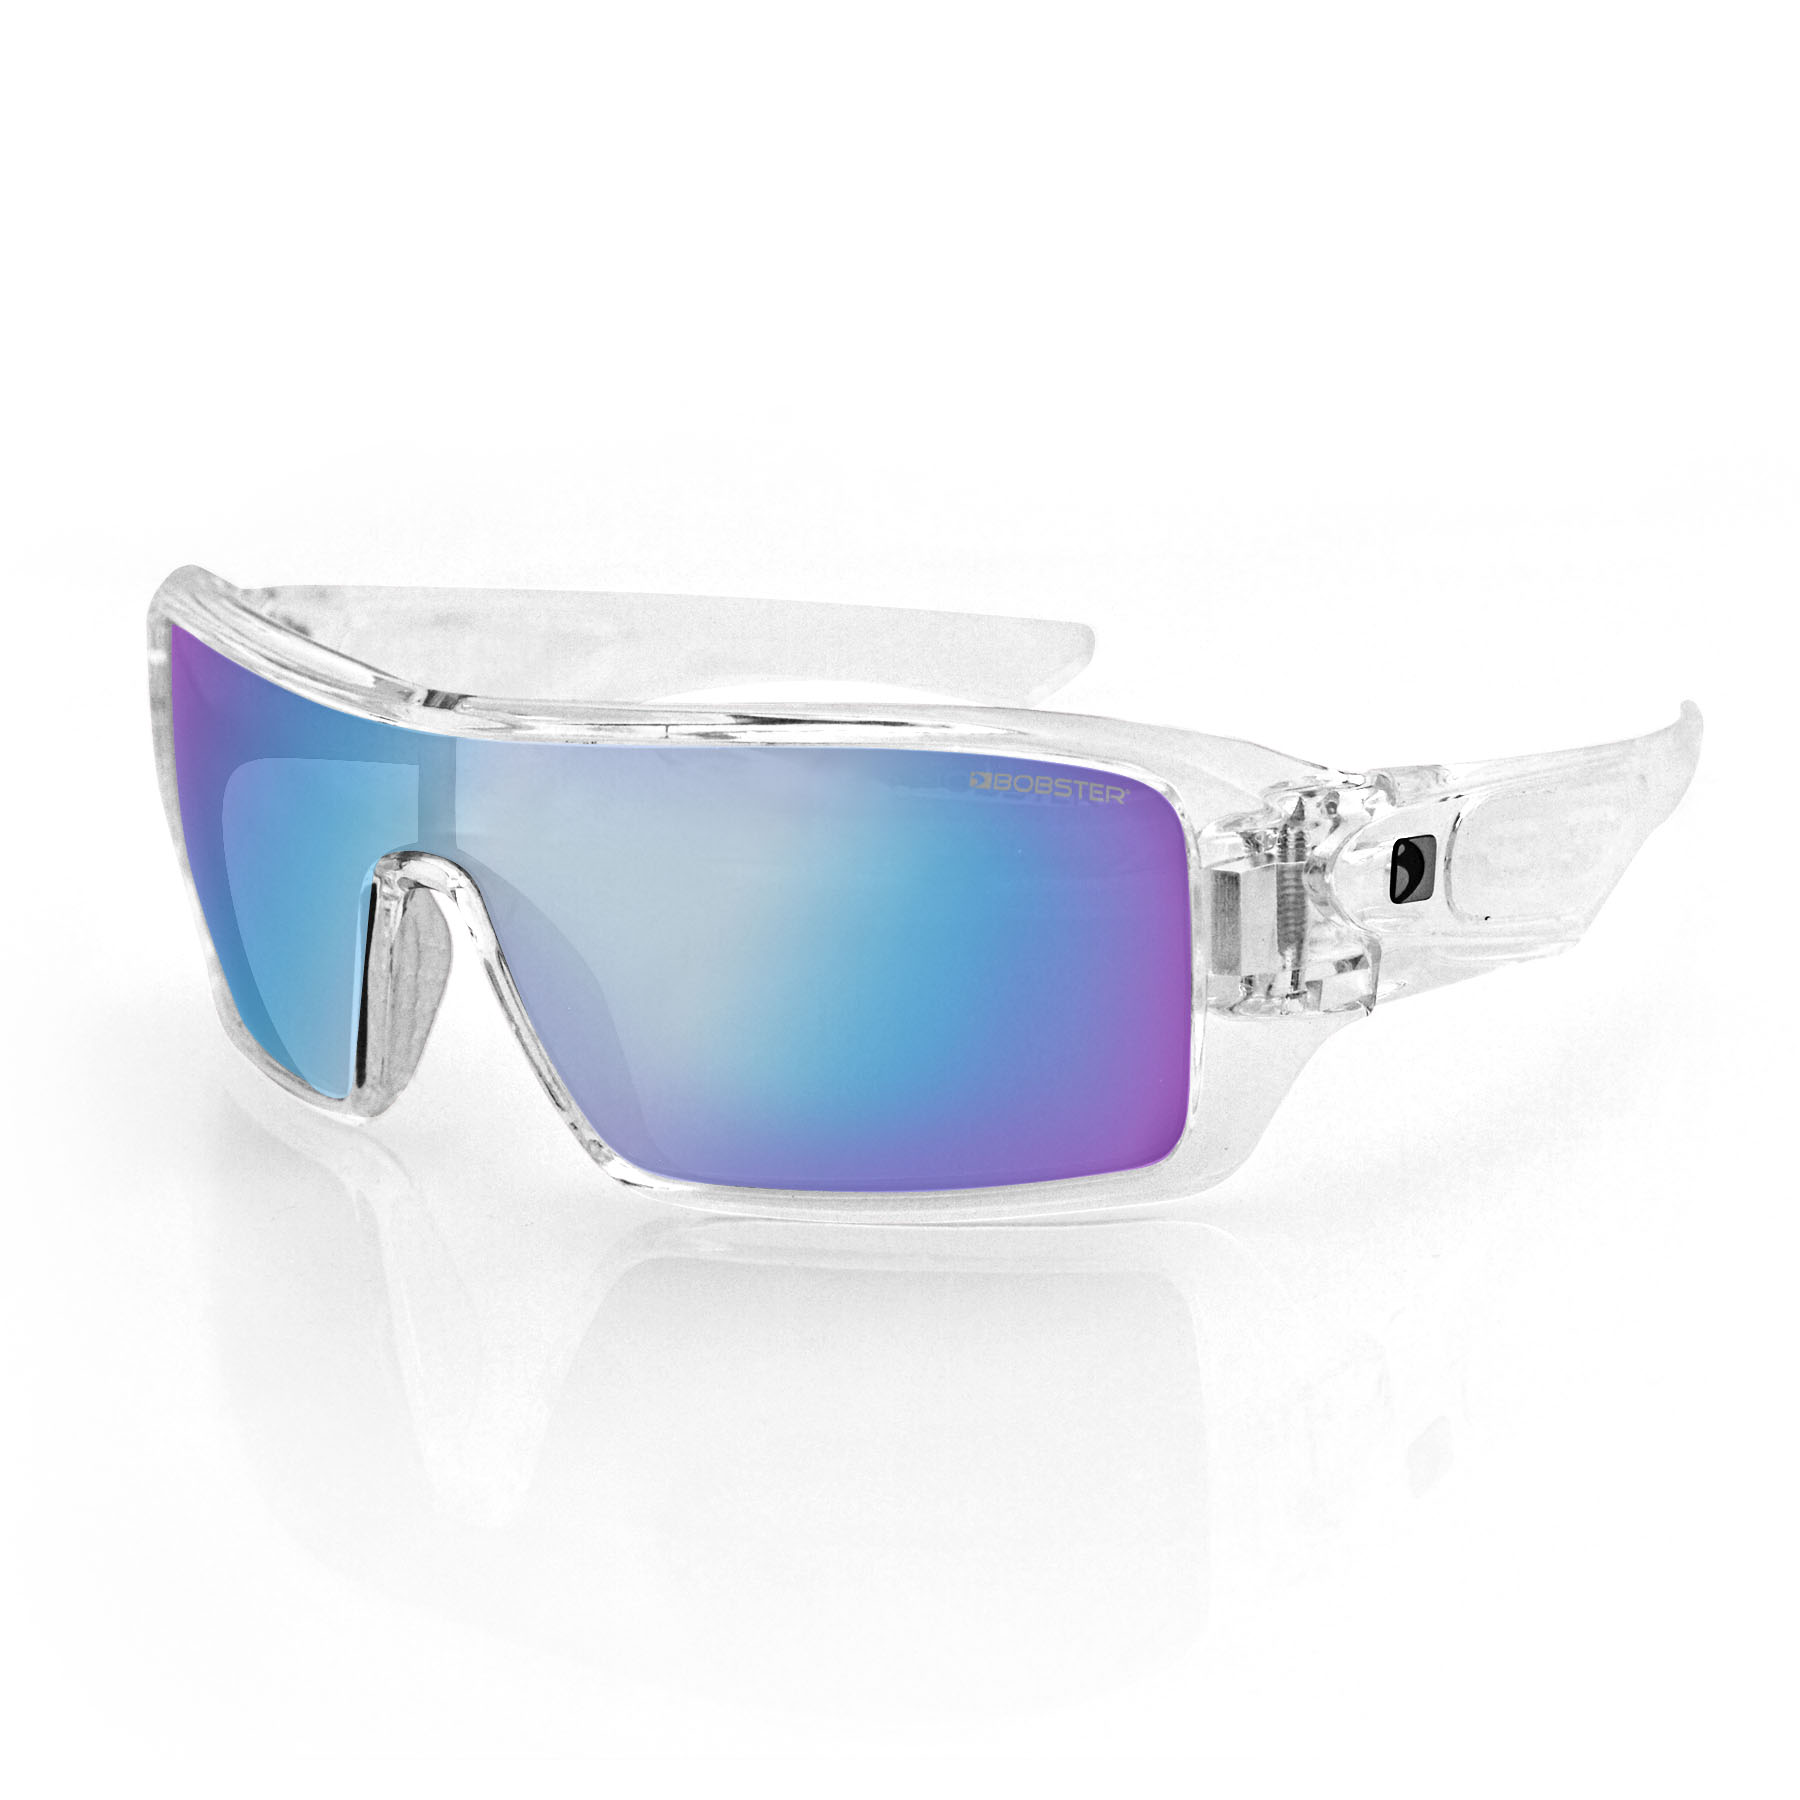 Paragon smoke cyan lens sunglasses